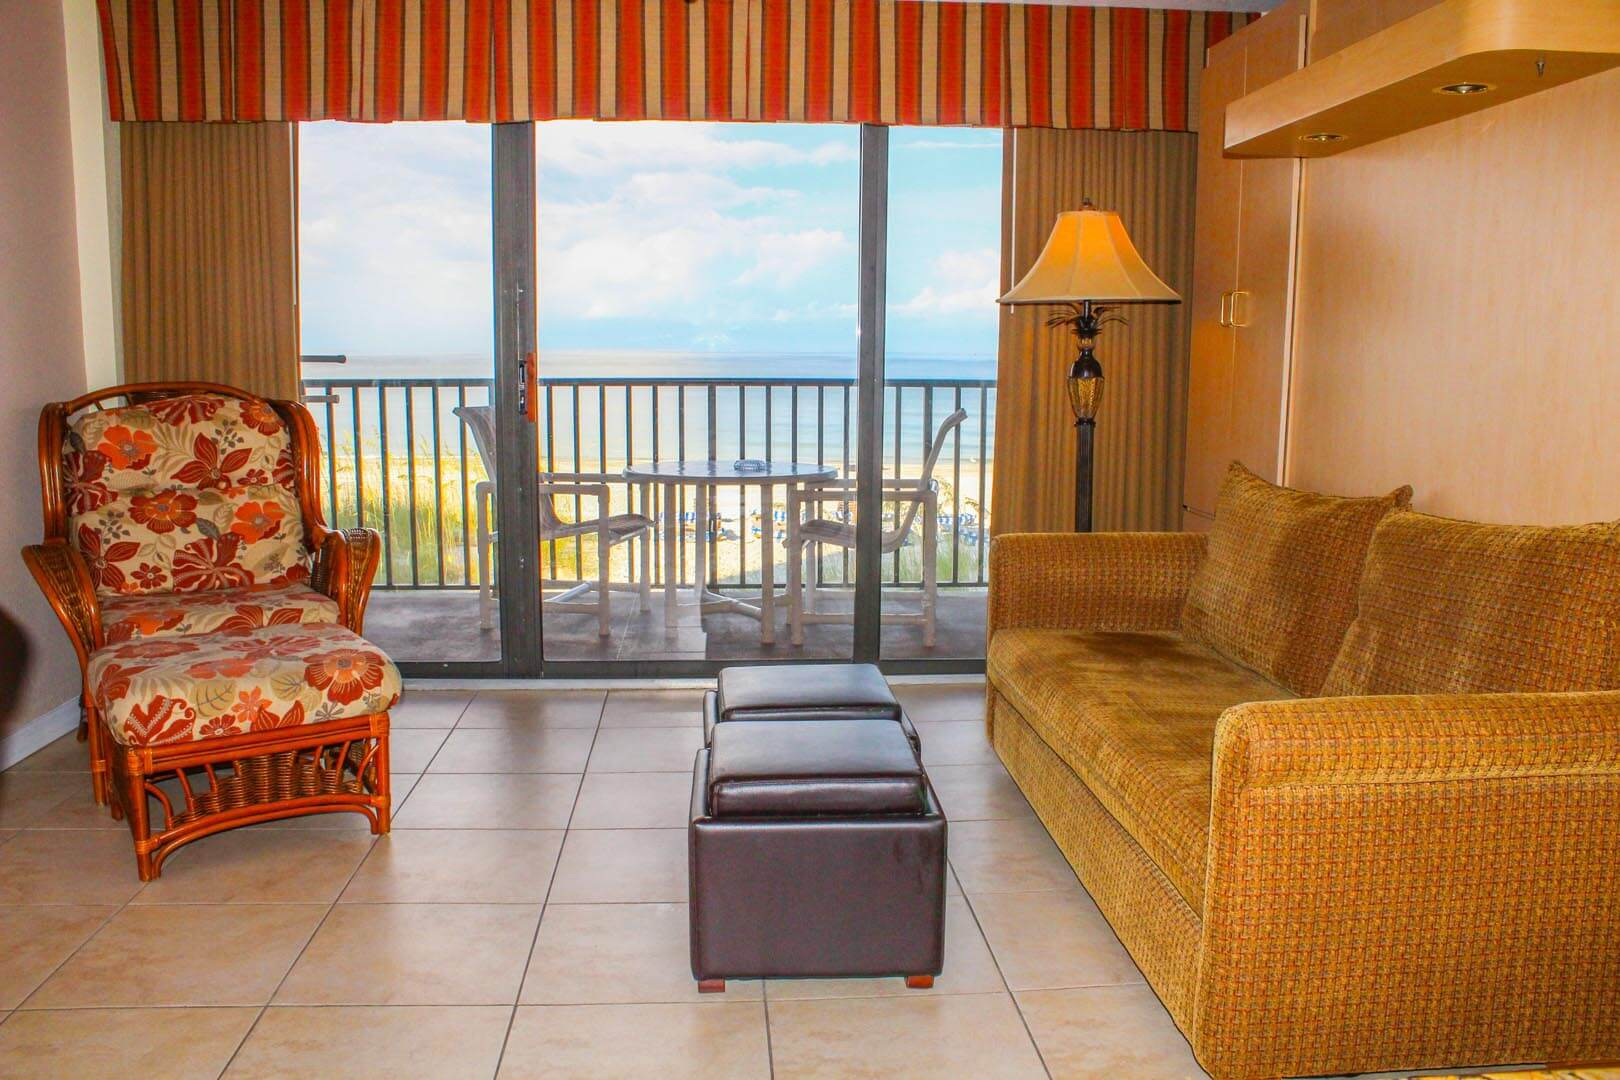 A cozy living room with a balcony facing the beach  at VRI's Island Gulf Resort in Madeira Beach, Florida.